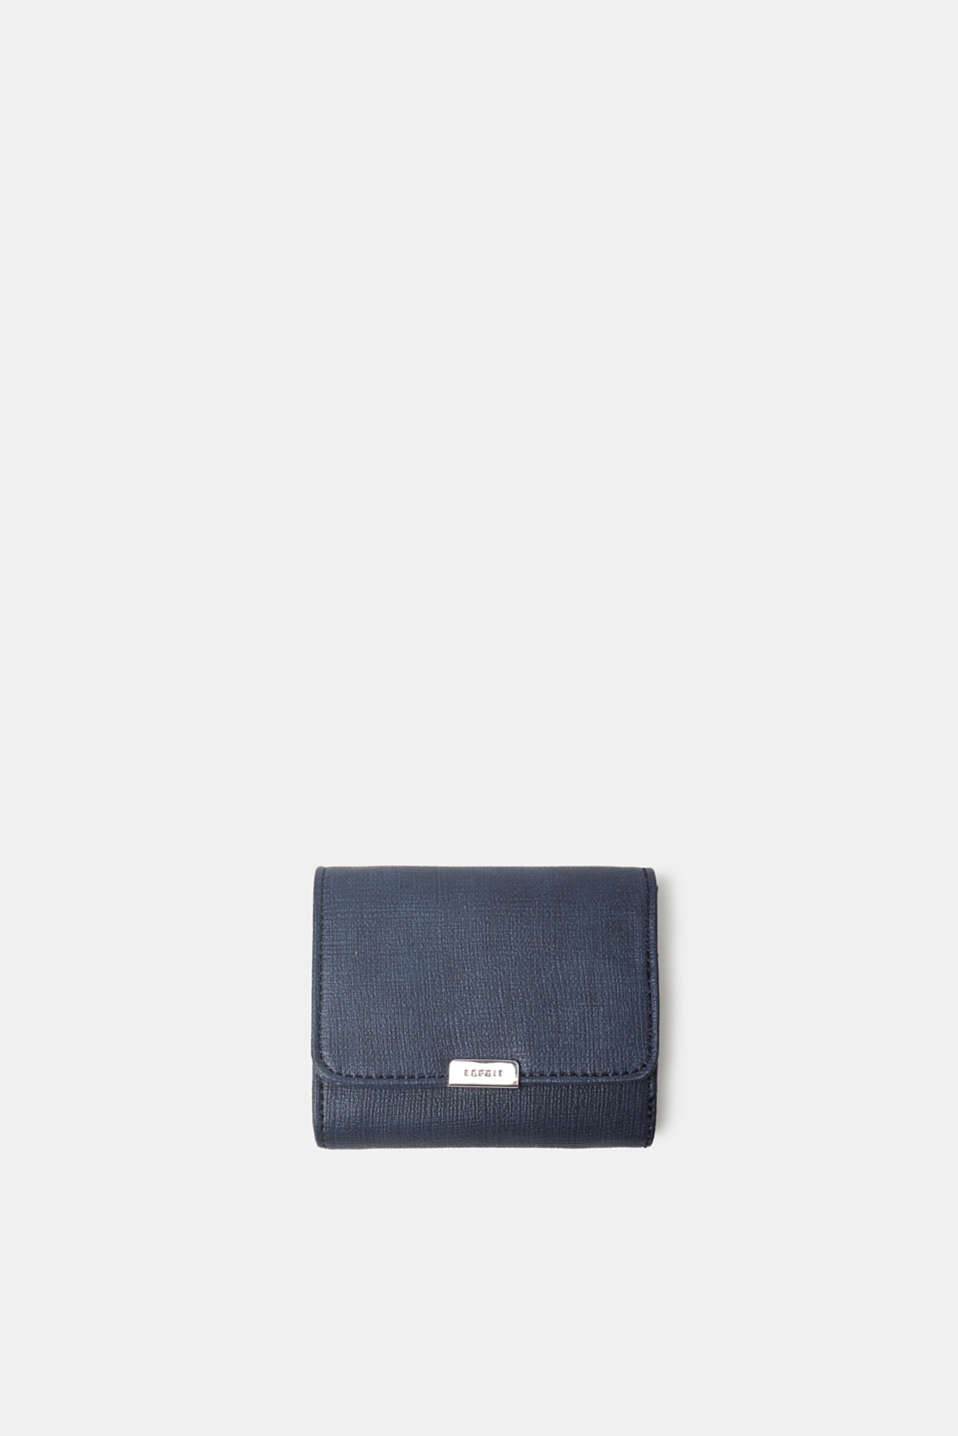 The compact format and strikingly textured faux leather make this wallet a firm fave.